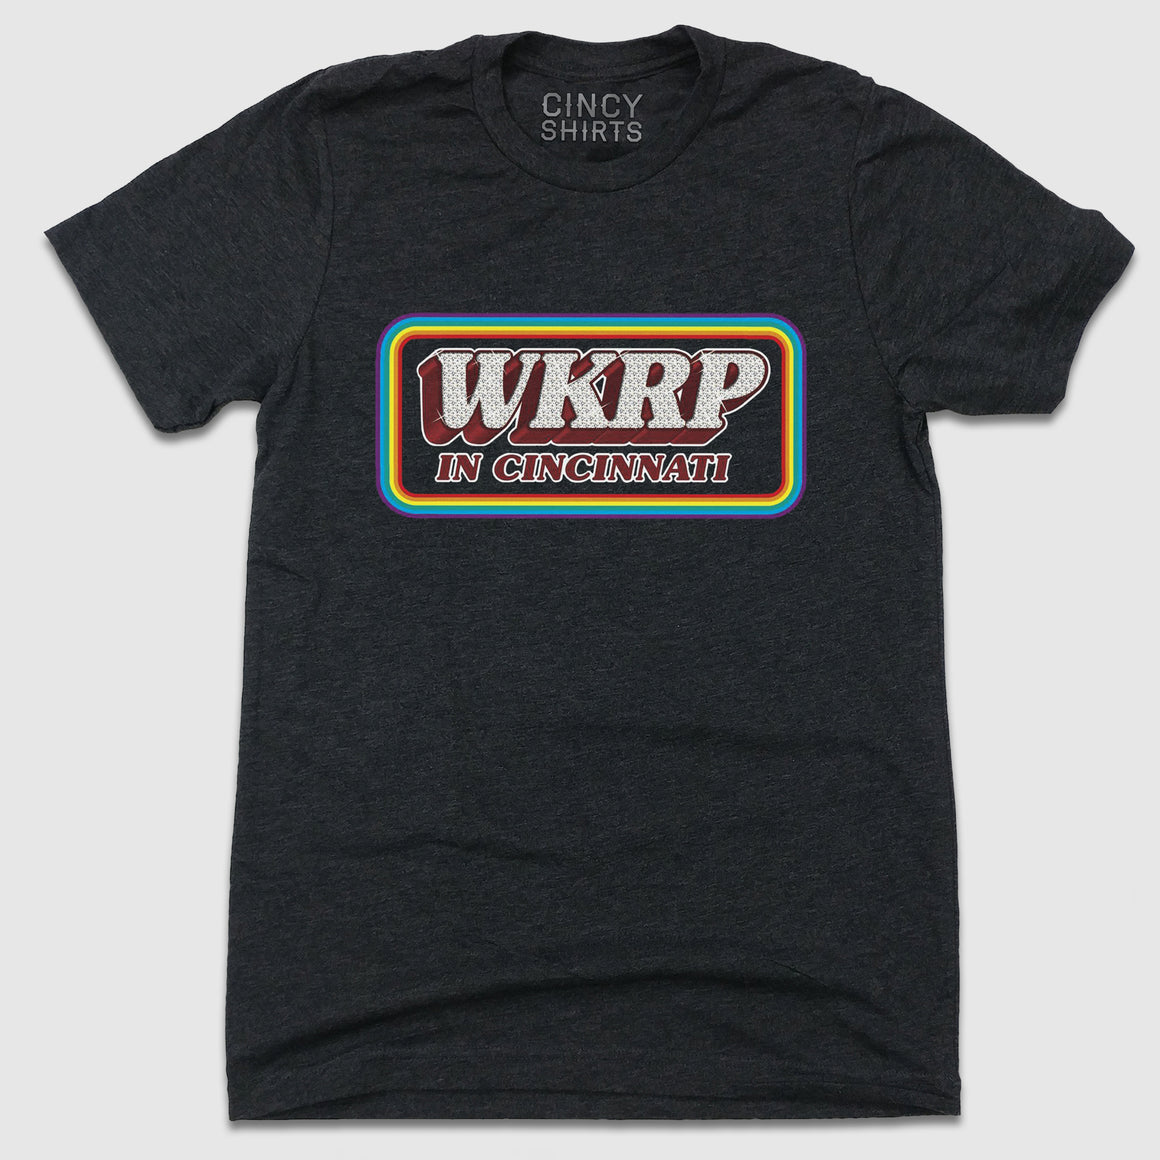 WKRP in Cincinnati Logo - Cincy Shirts